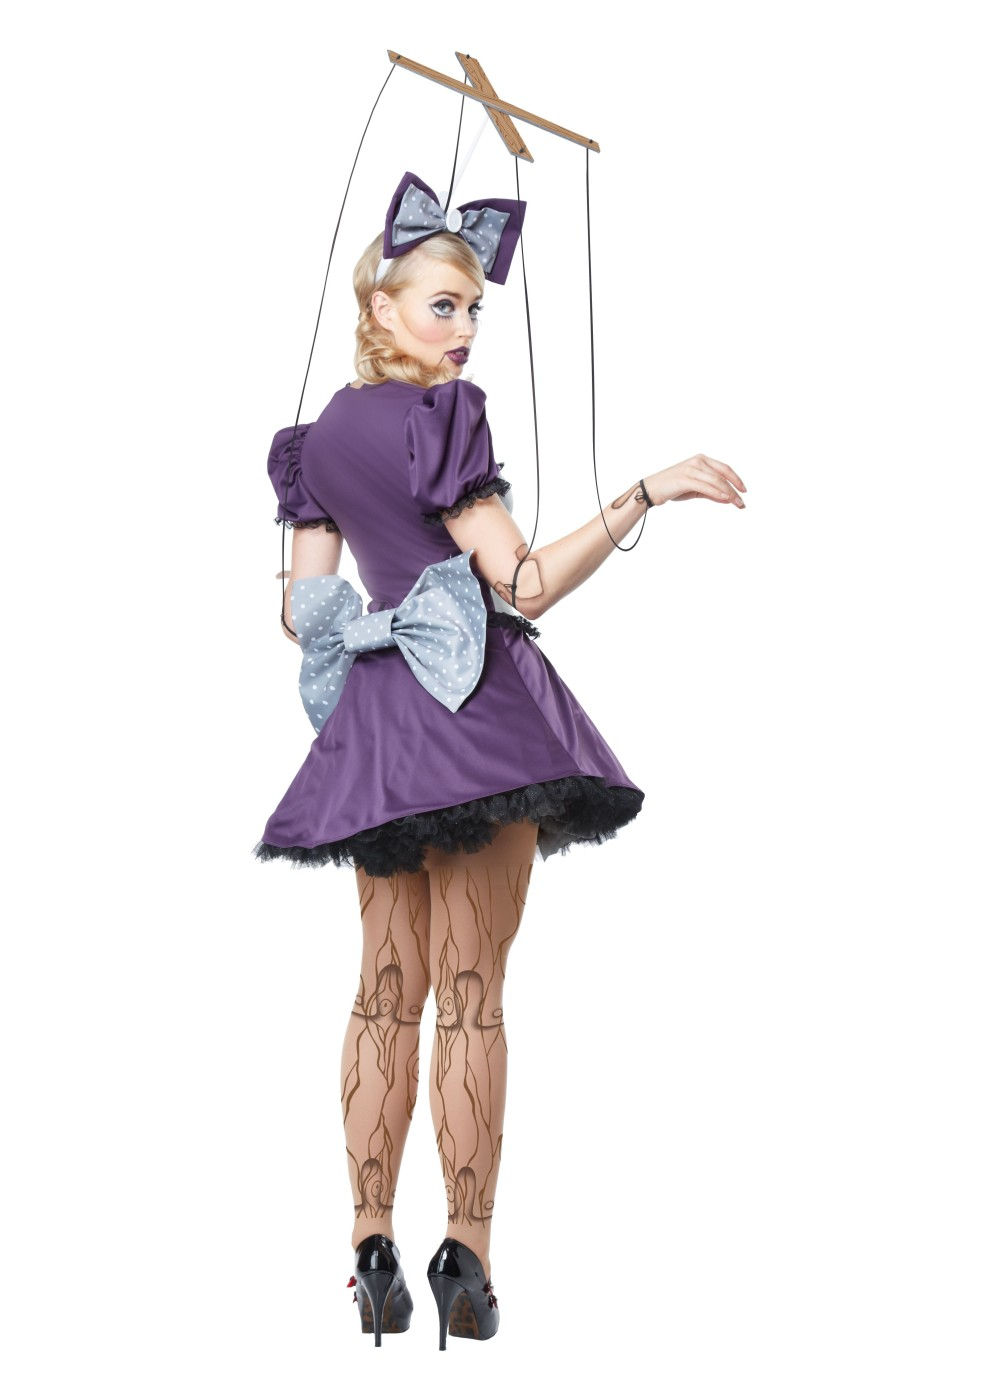 Marionette Women Costume Funny Costumes